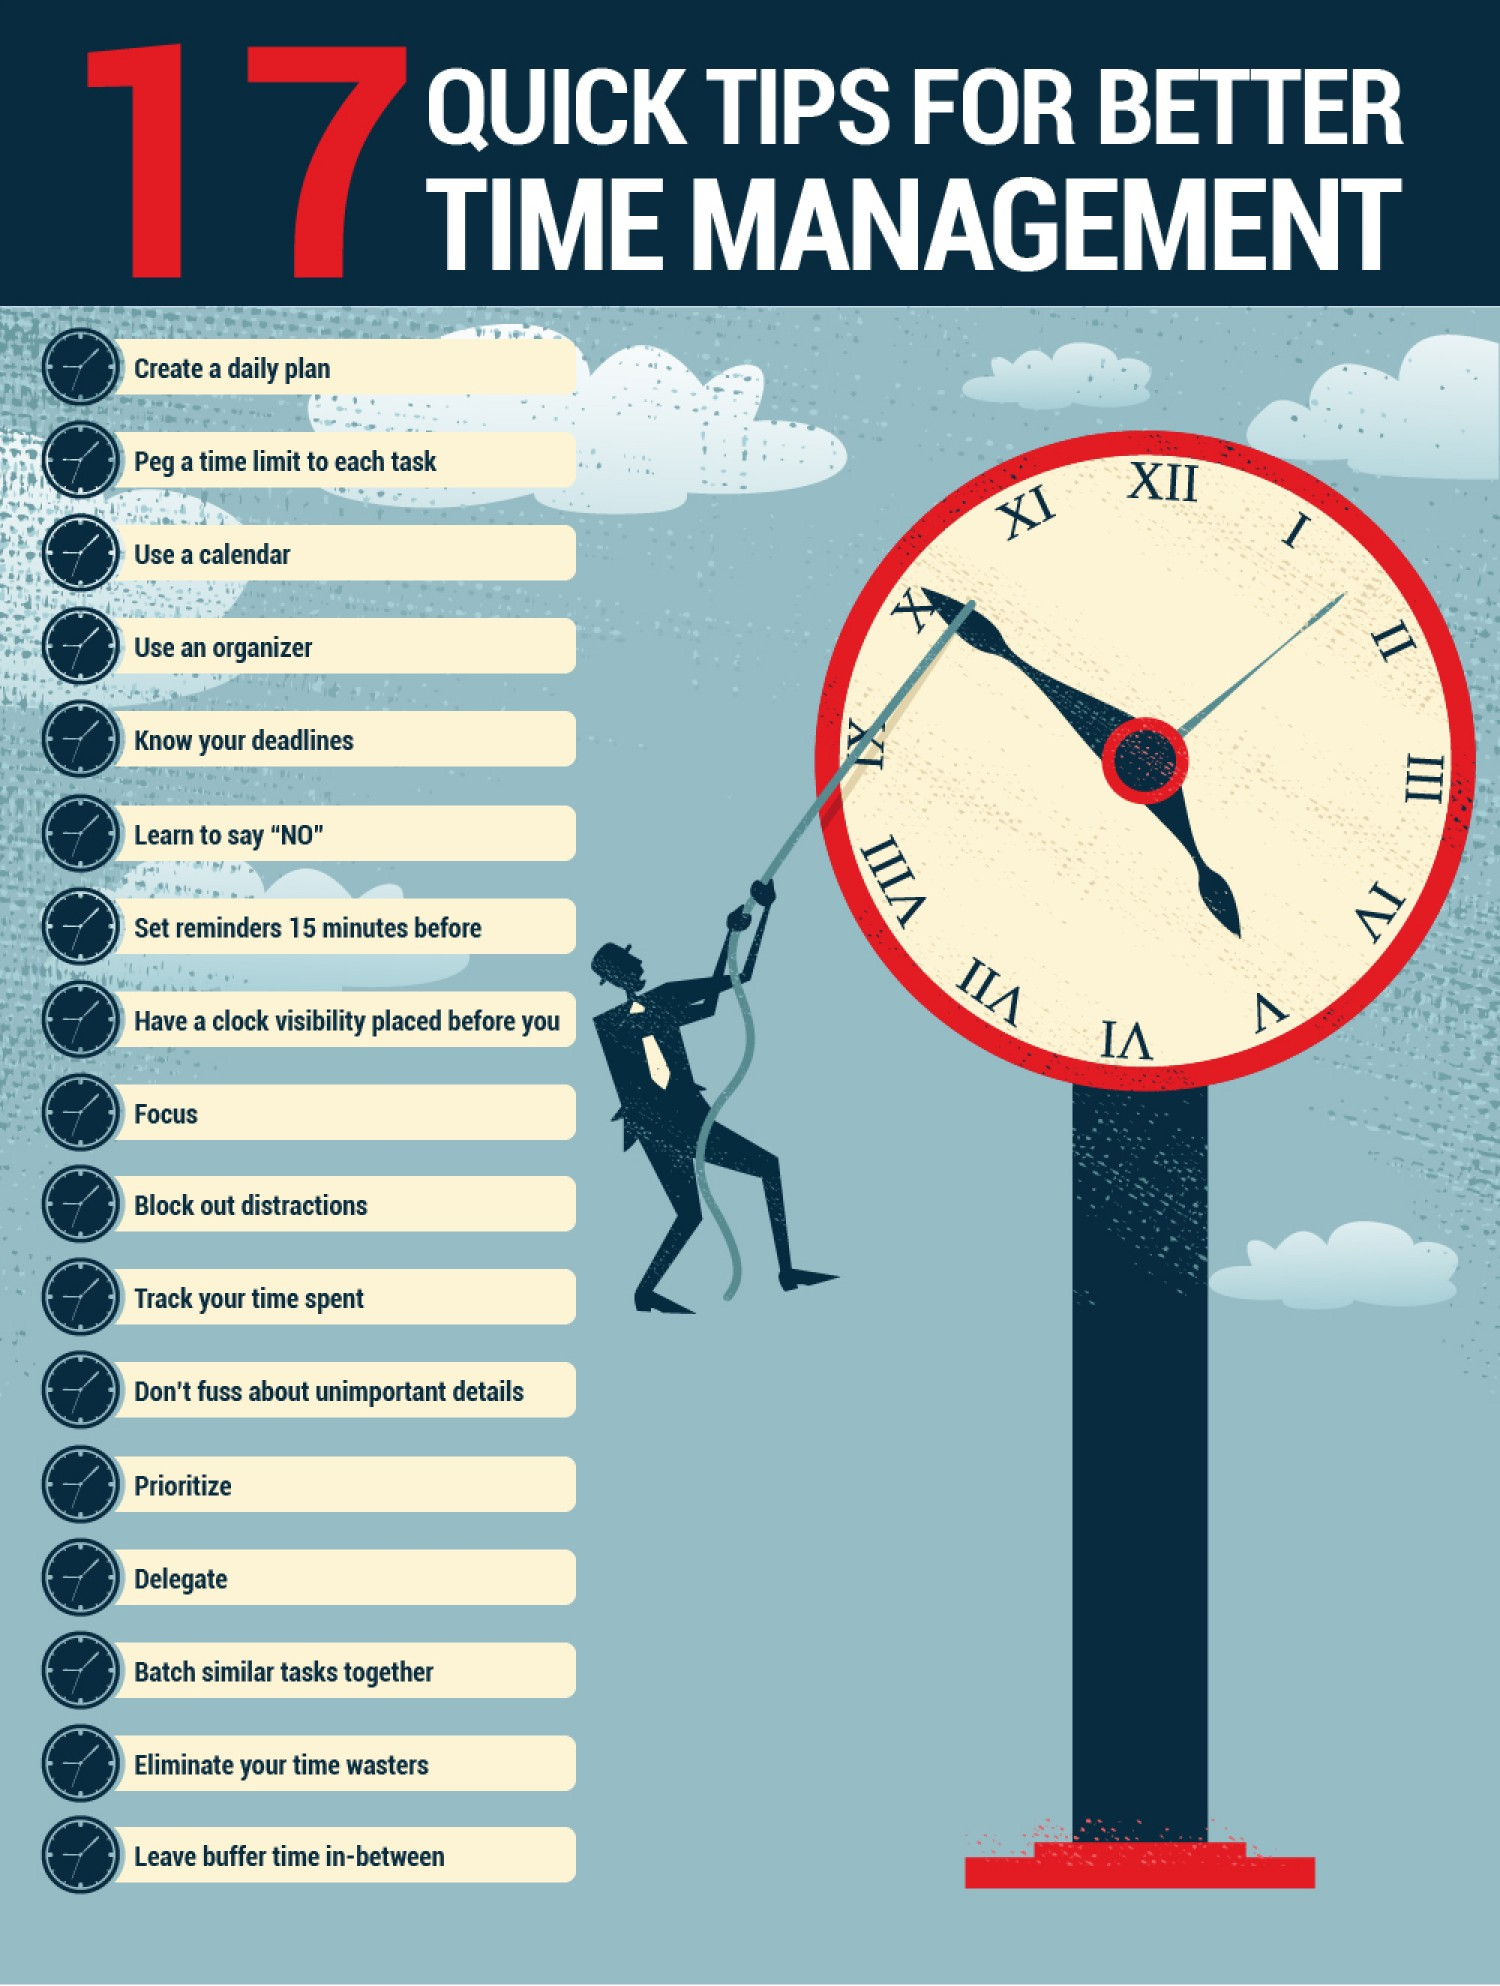 Great 17 Time Management Tips (Infographic) | MASTROIANNI CONSULTING